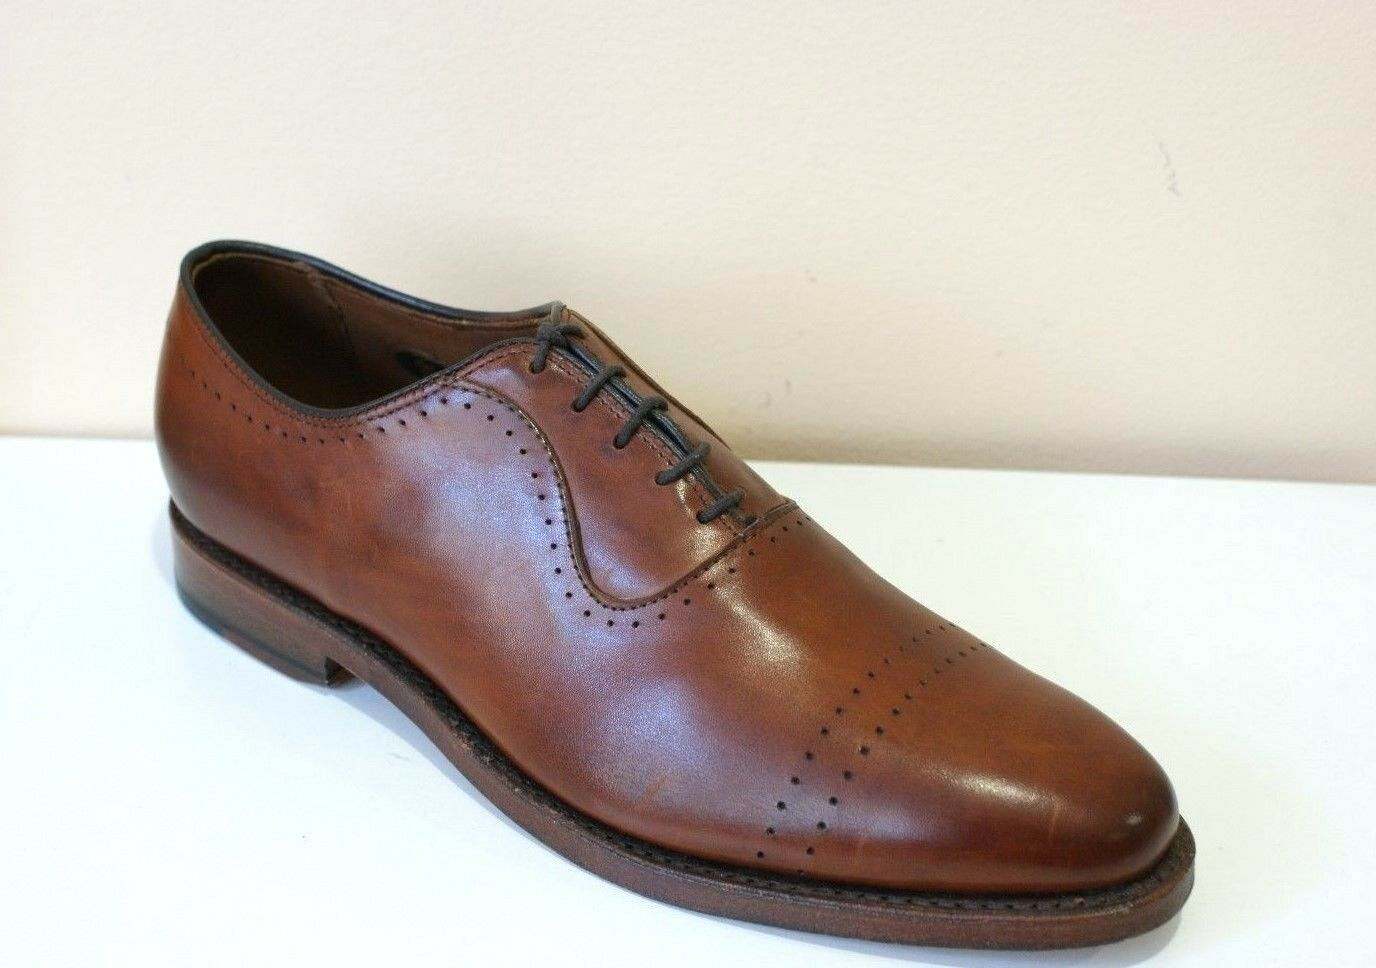 Allen Edmond Vernon Saddle Brown Leather Oxford Dress shoes Mens 8 NEW IN BOX